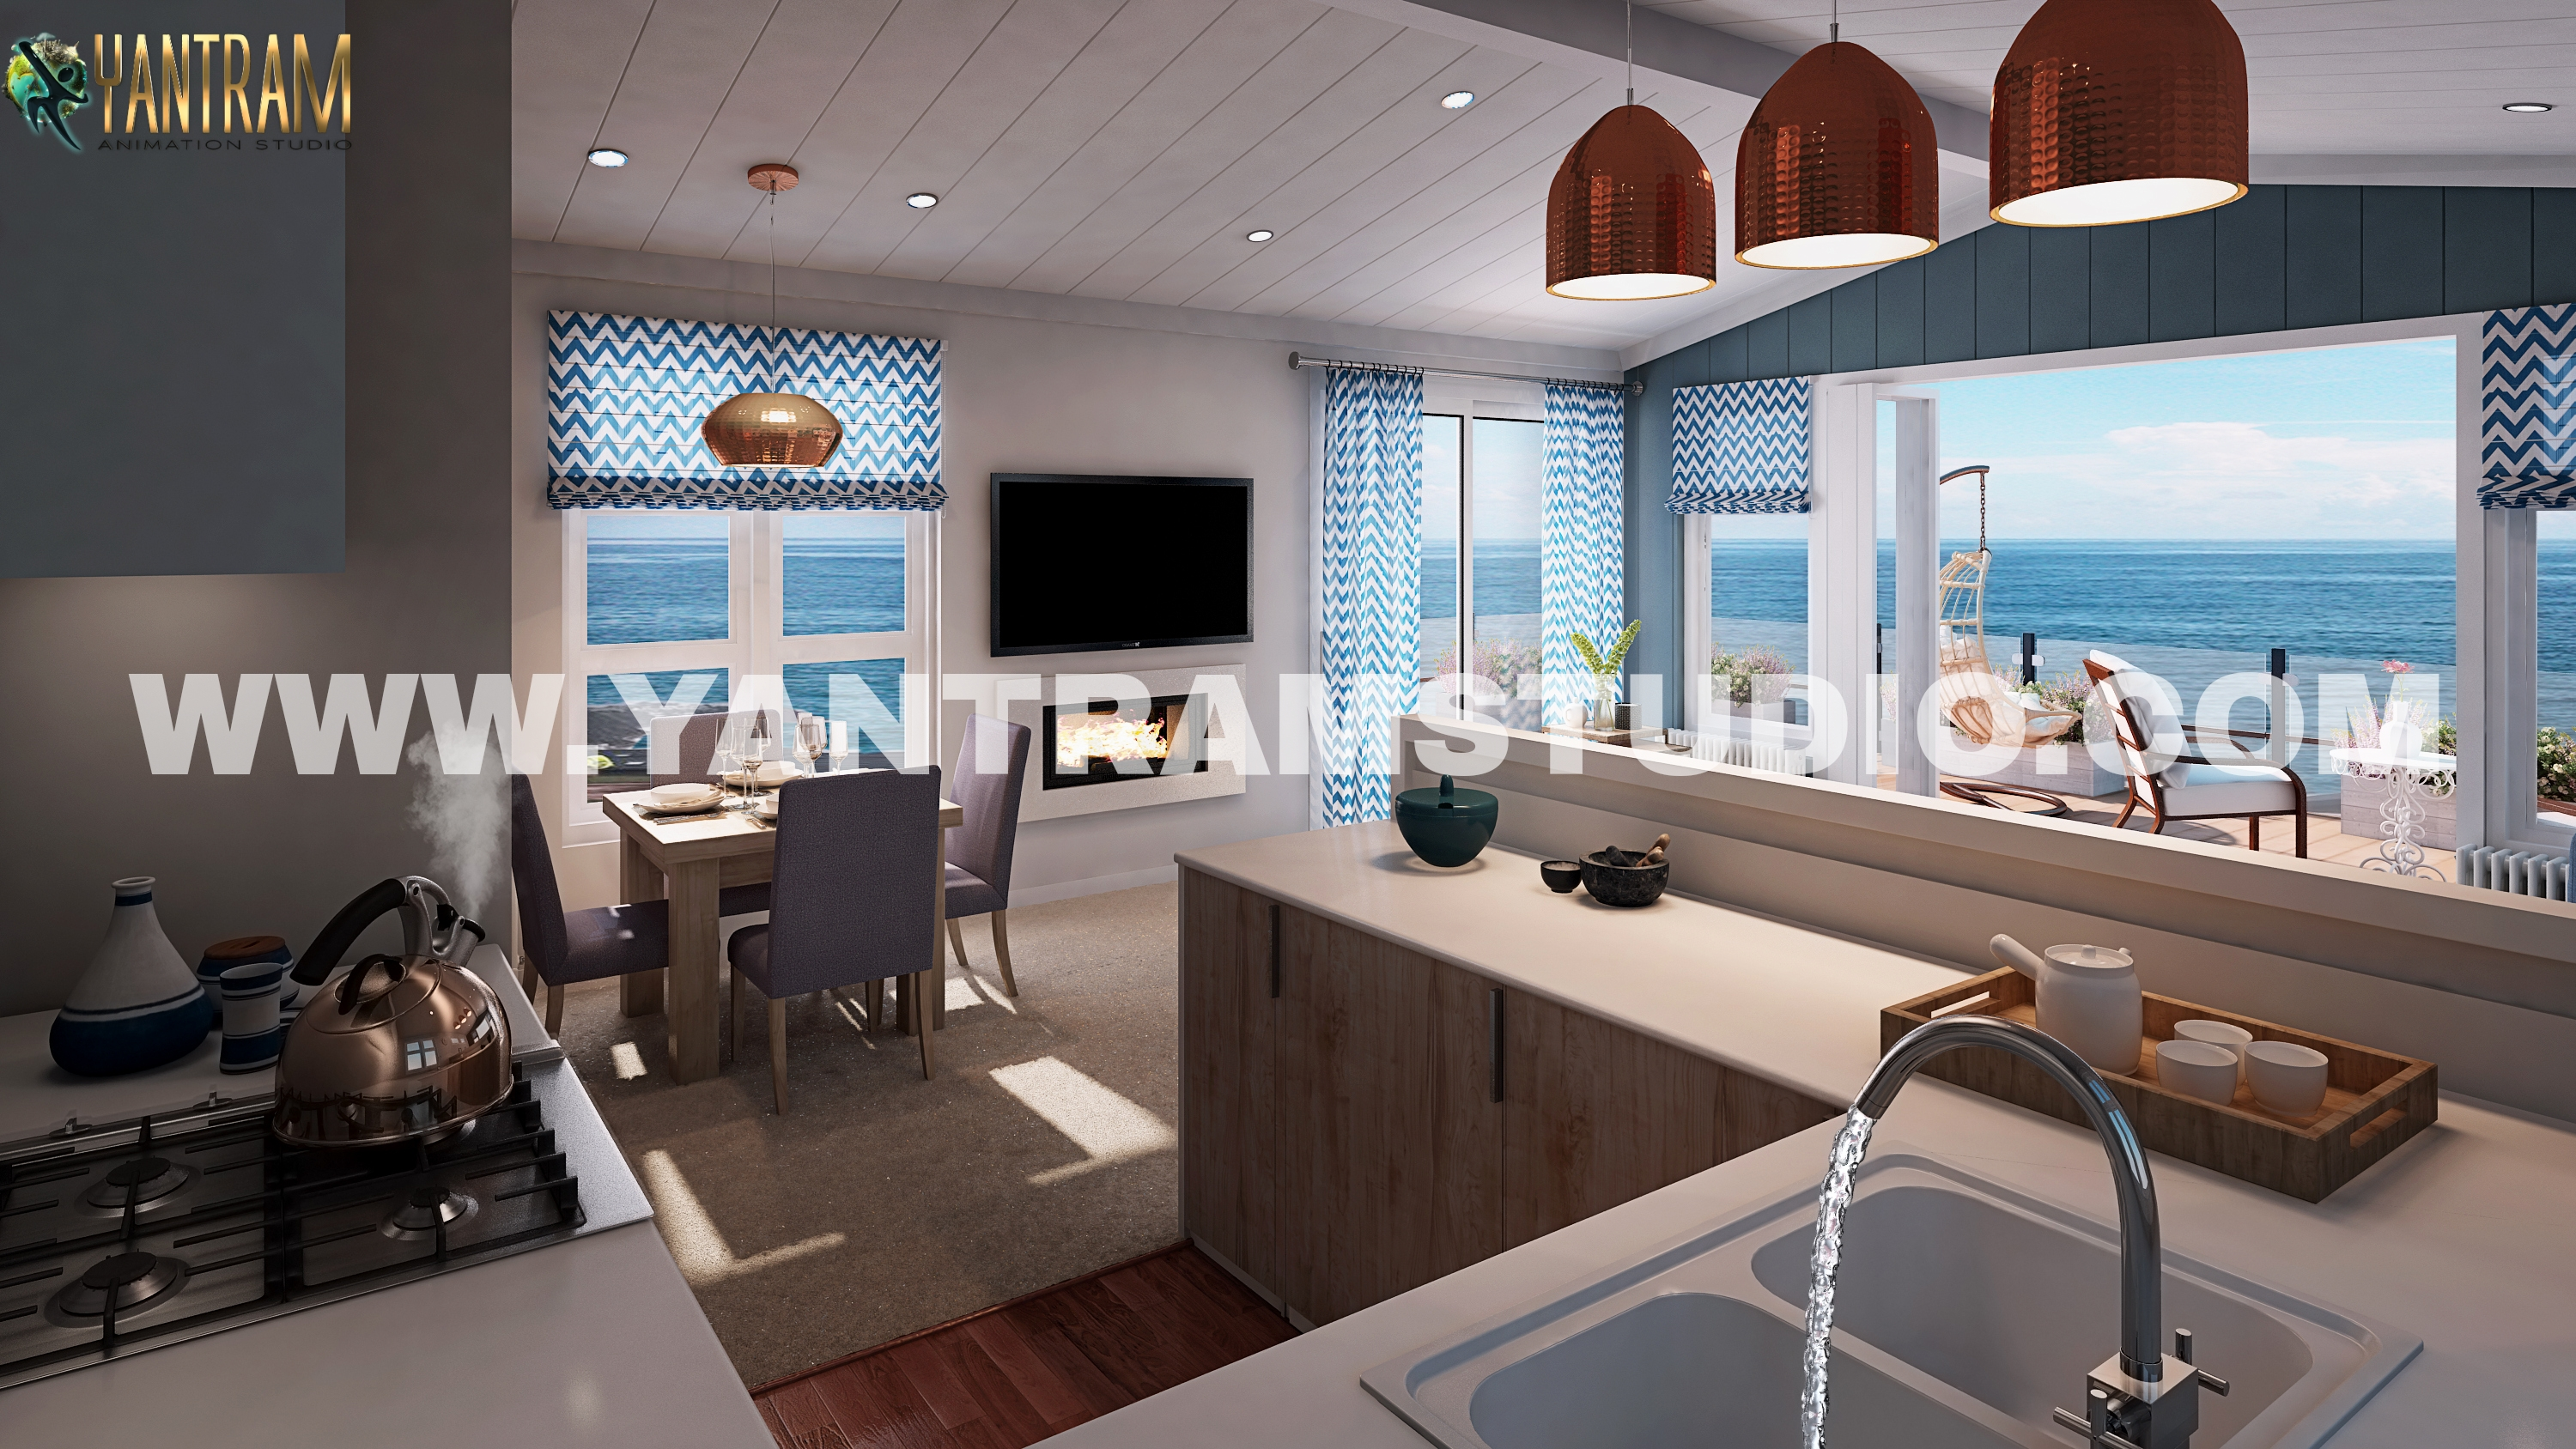 3d interior design of kitchen living room by Architectural Visualisati,Ahmedabad,Services,Other Services,77traders